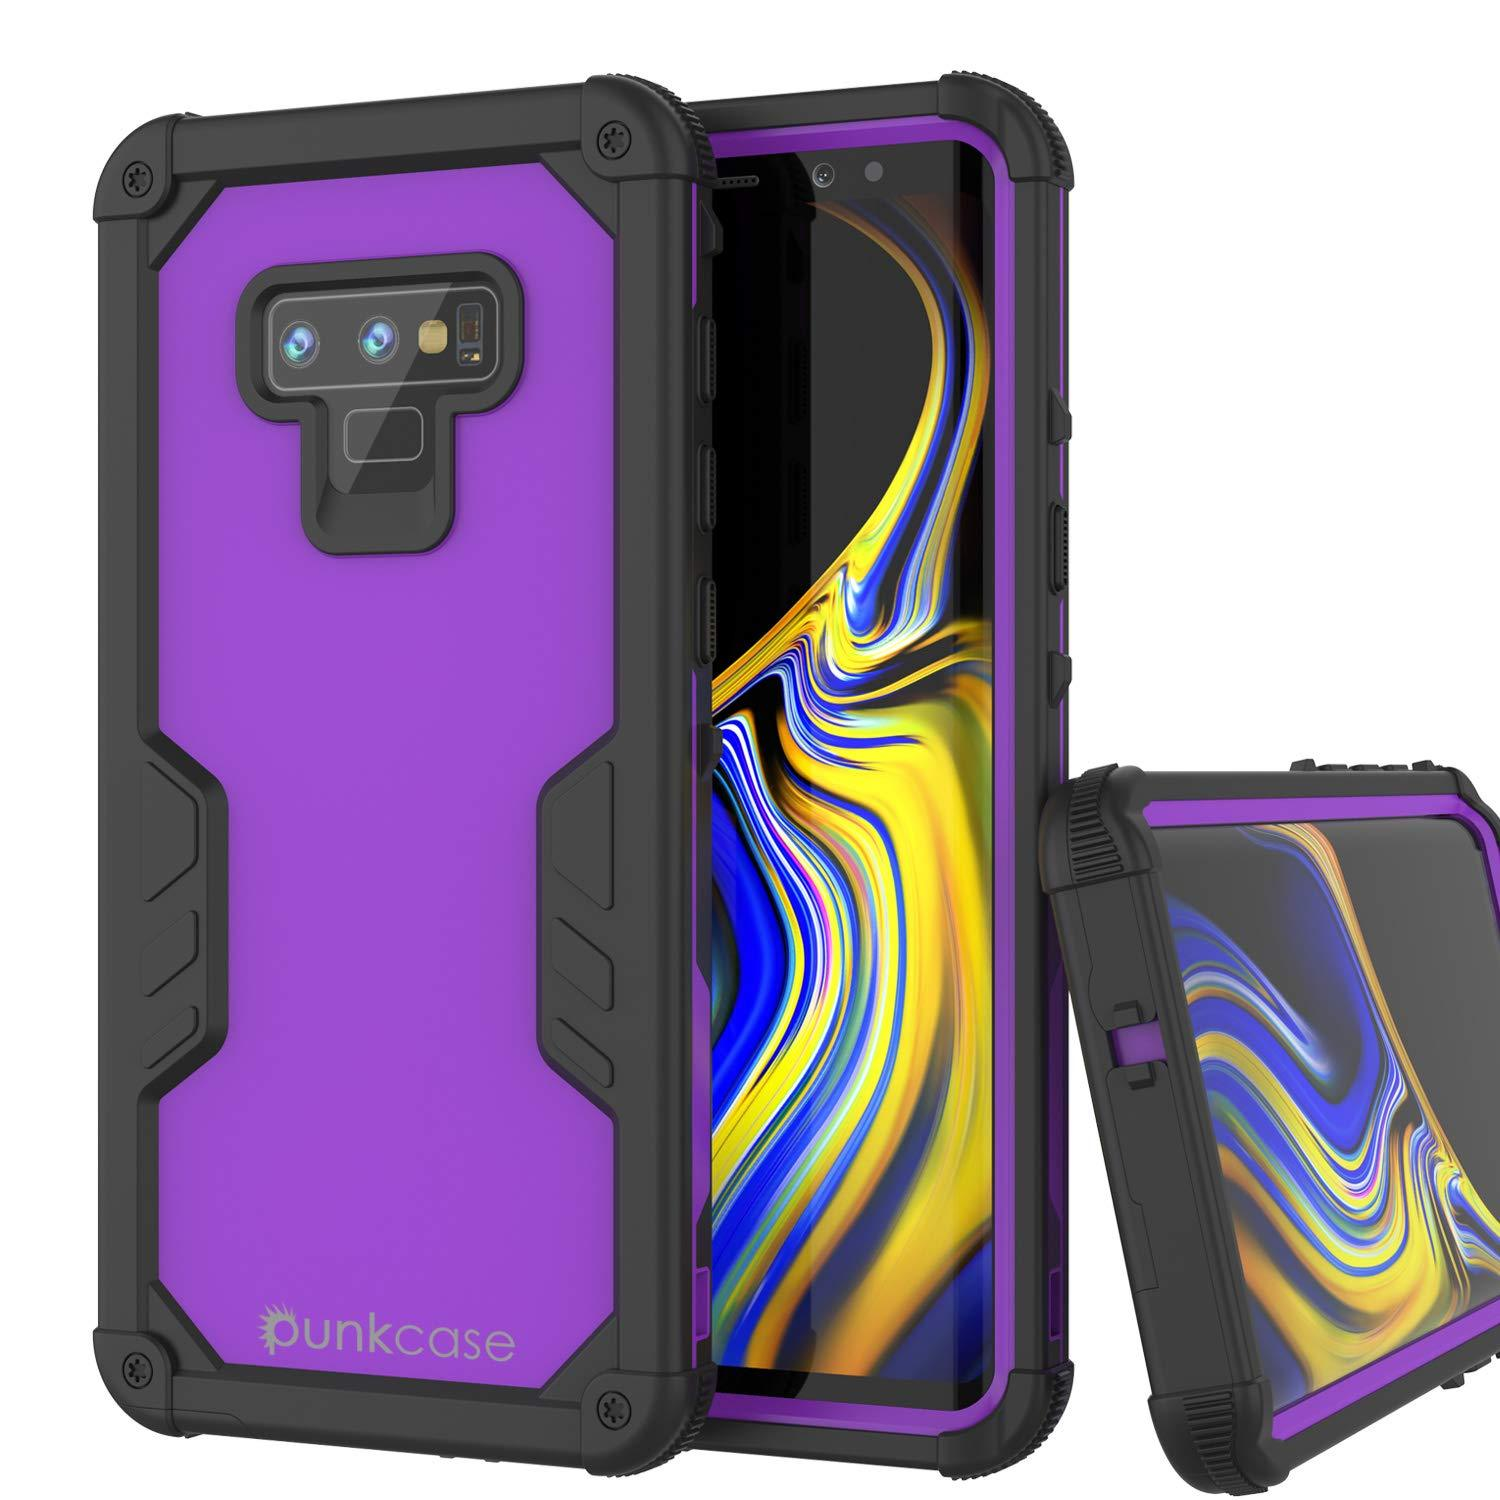 Punkcase Galaxy Note 9 Waterproof Case [Navy Seal Extreme Series] Armor Cover W/ Built In Screen Protector [Purple]